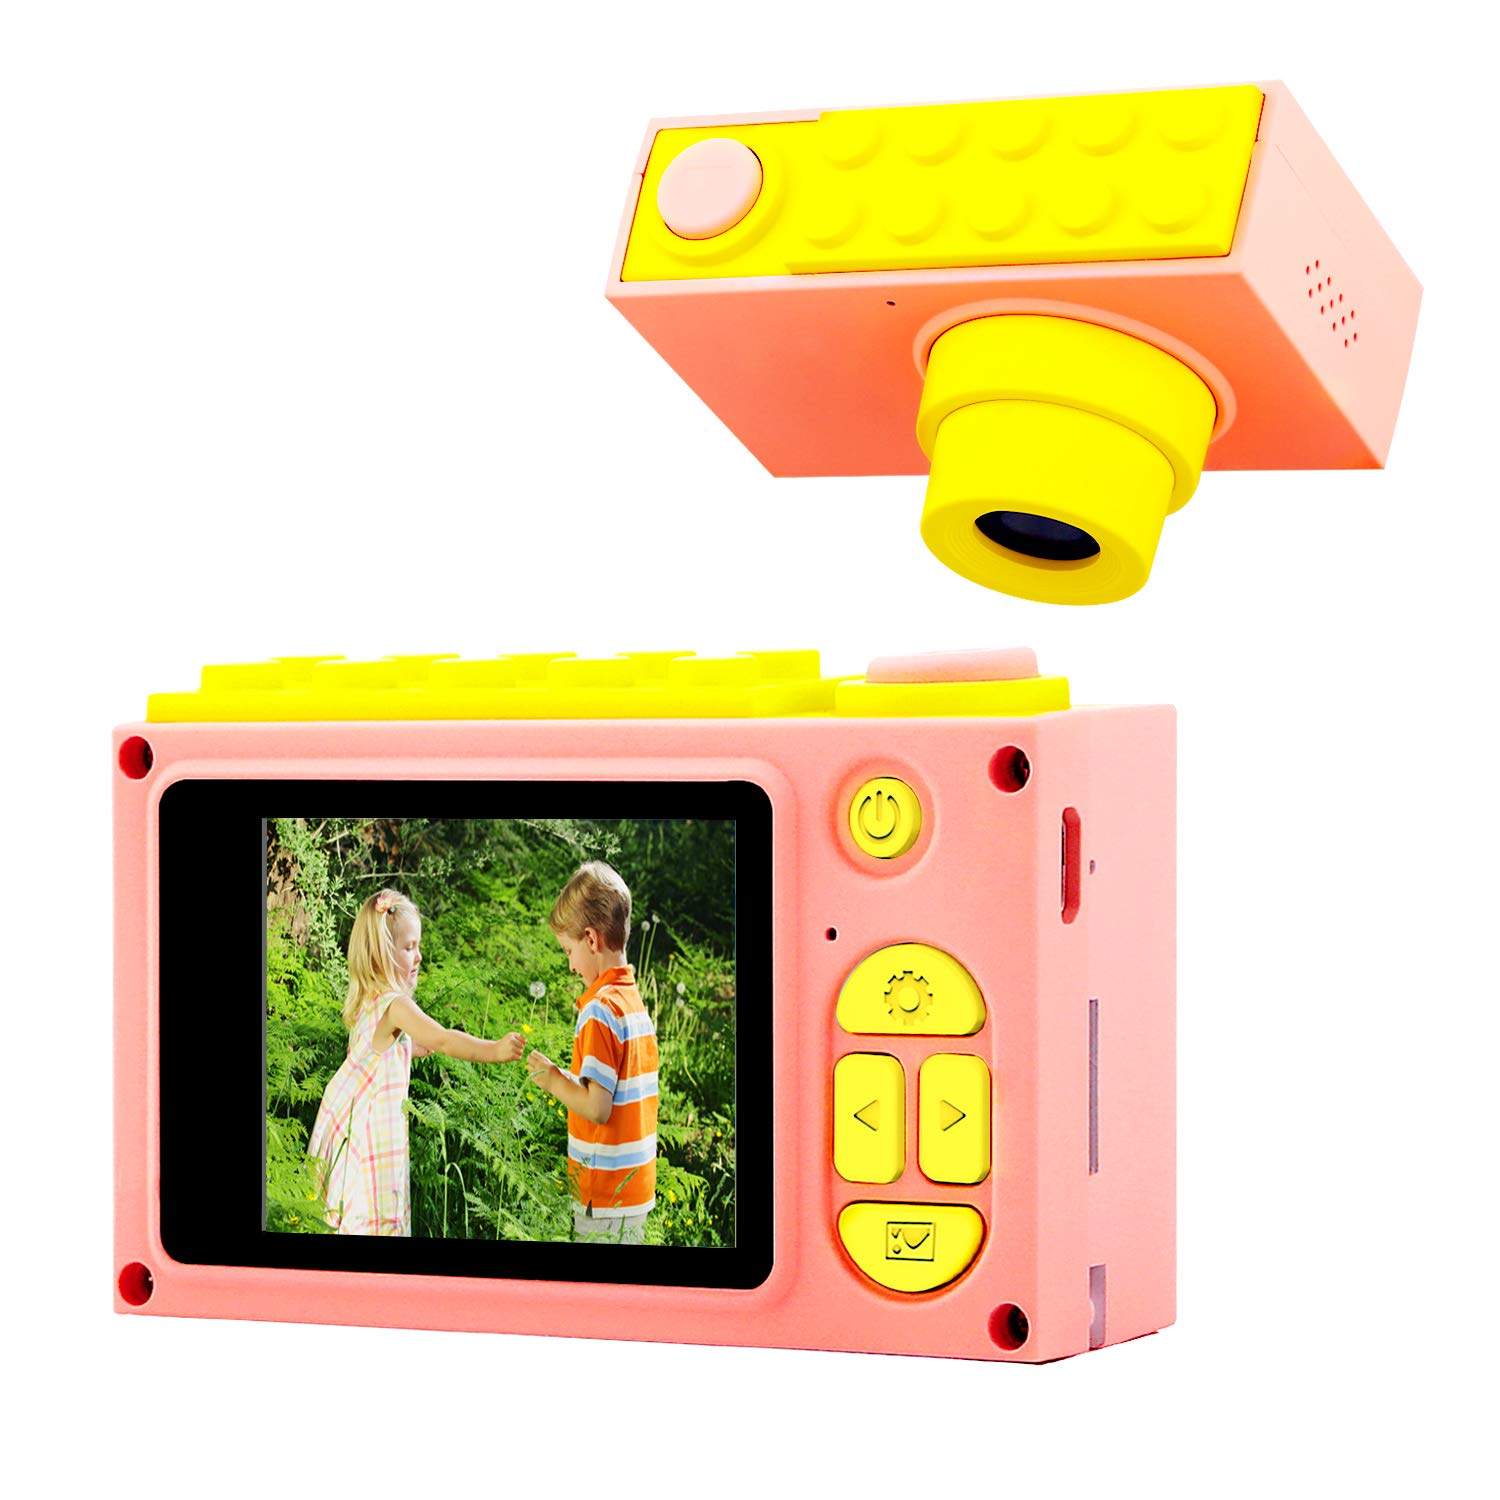 TurnRaise Children's Camera Digital Video Camera Toys with Waterproof Case, Upgraded Version 800m Pixel 2.0' LED Kids Camera Suitable for Birthday Gifts (Pink) Upgraded Version 800m Pixel 2.0 LED Kids Camera Suitable for Birthday Gifts (Pink) TURN RAISE